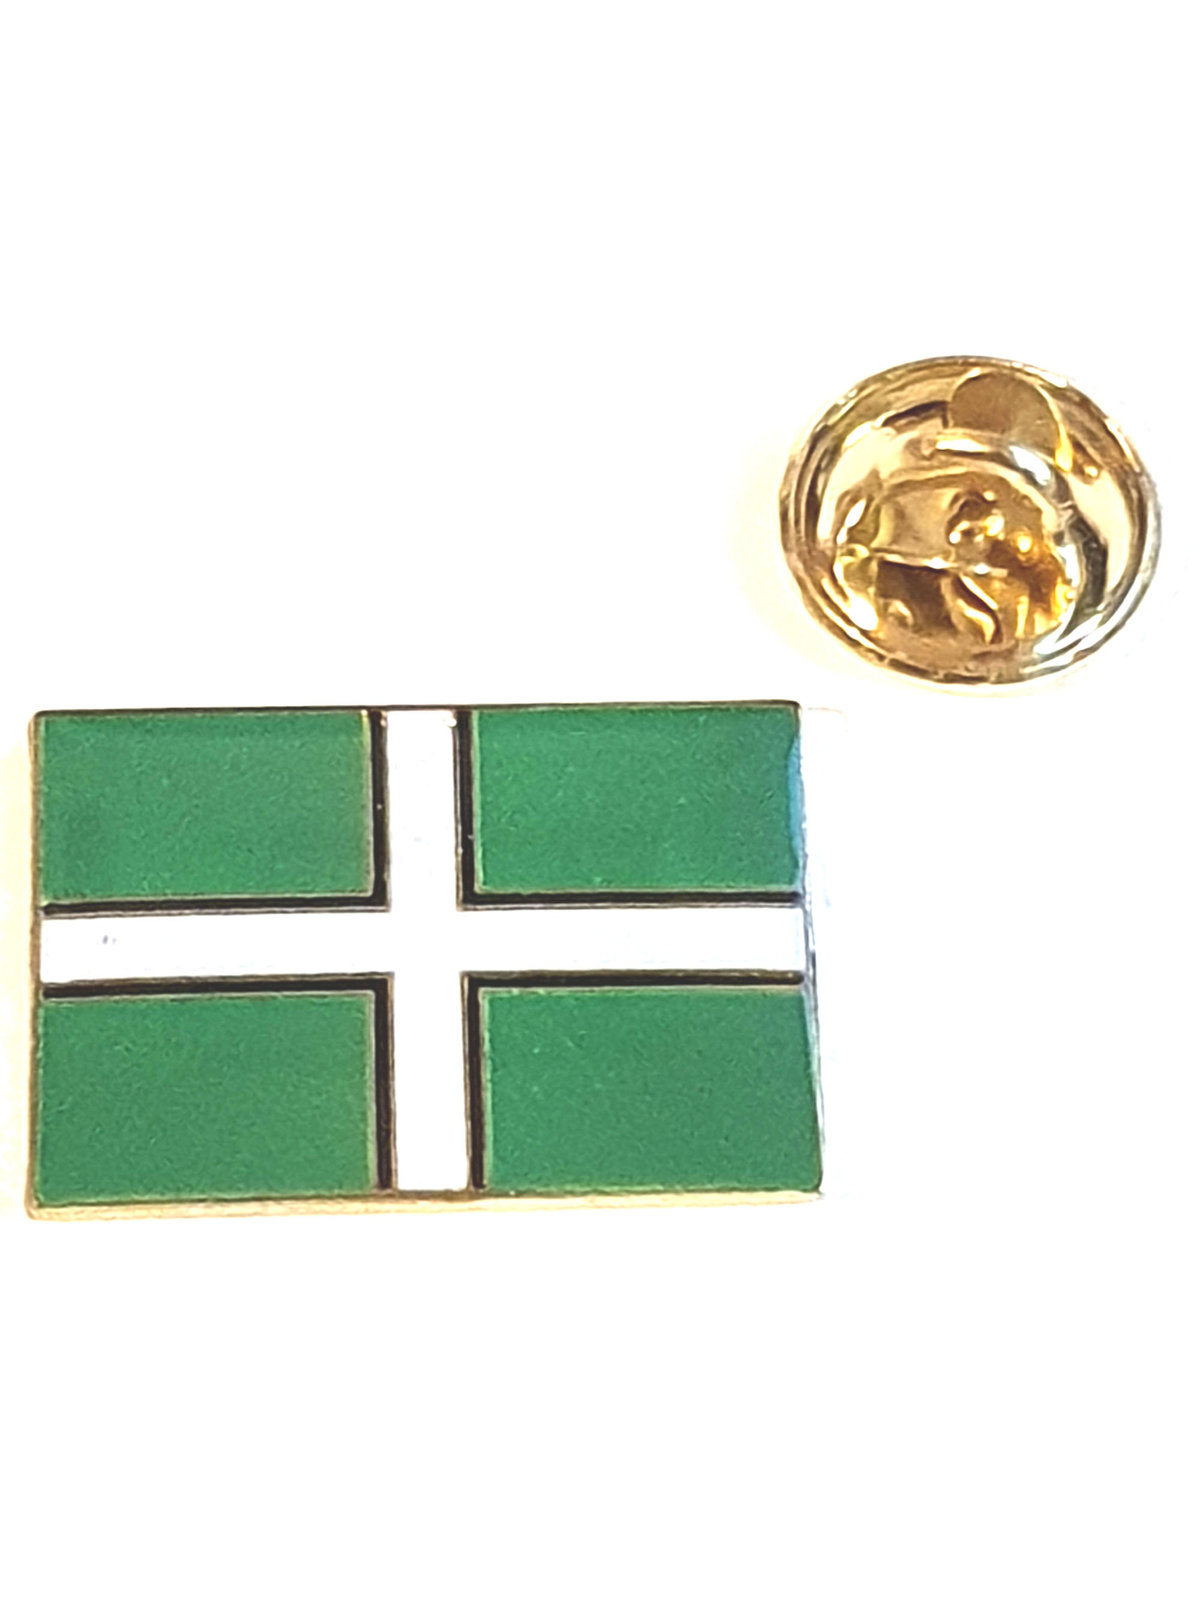 devon, devonshire Flag  lapel pin  handmade in uk from uk made parts, boxed tie,